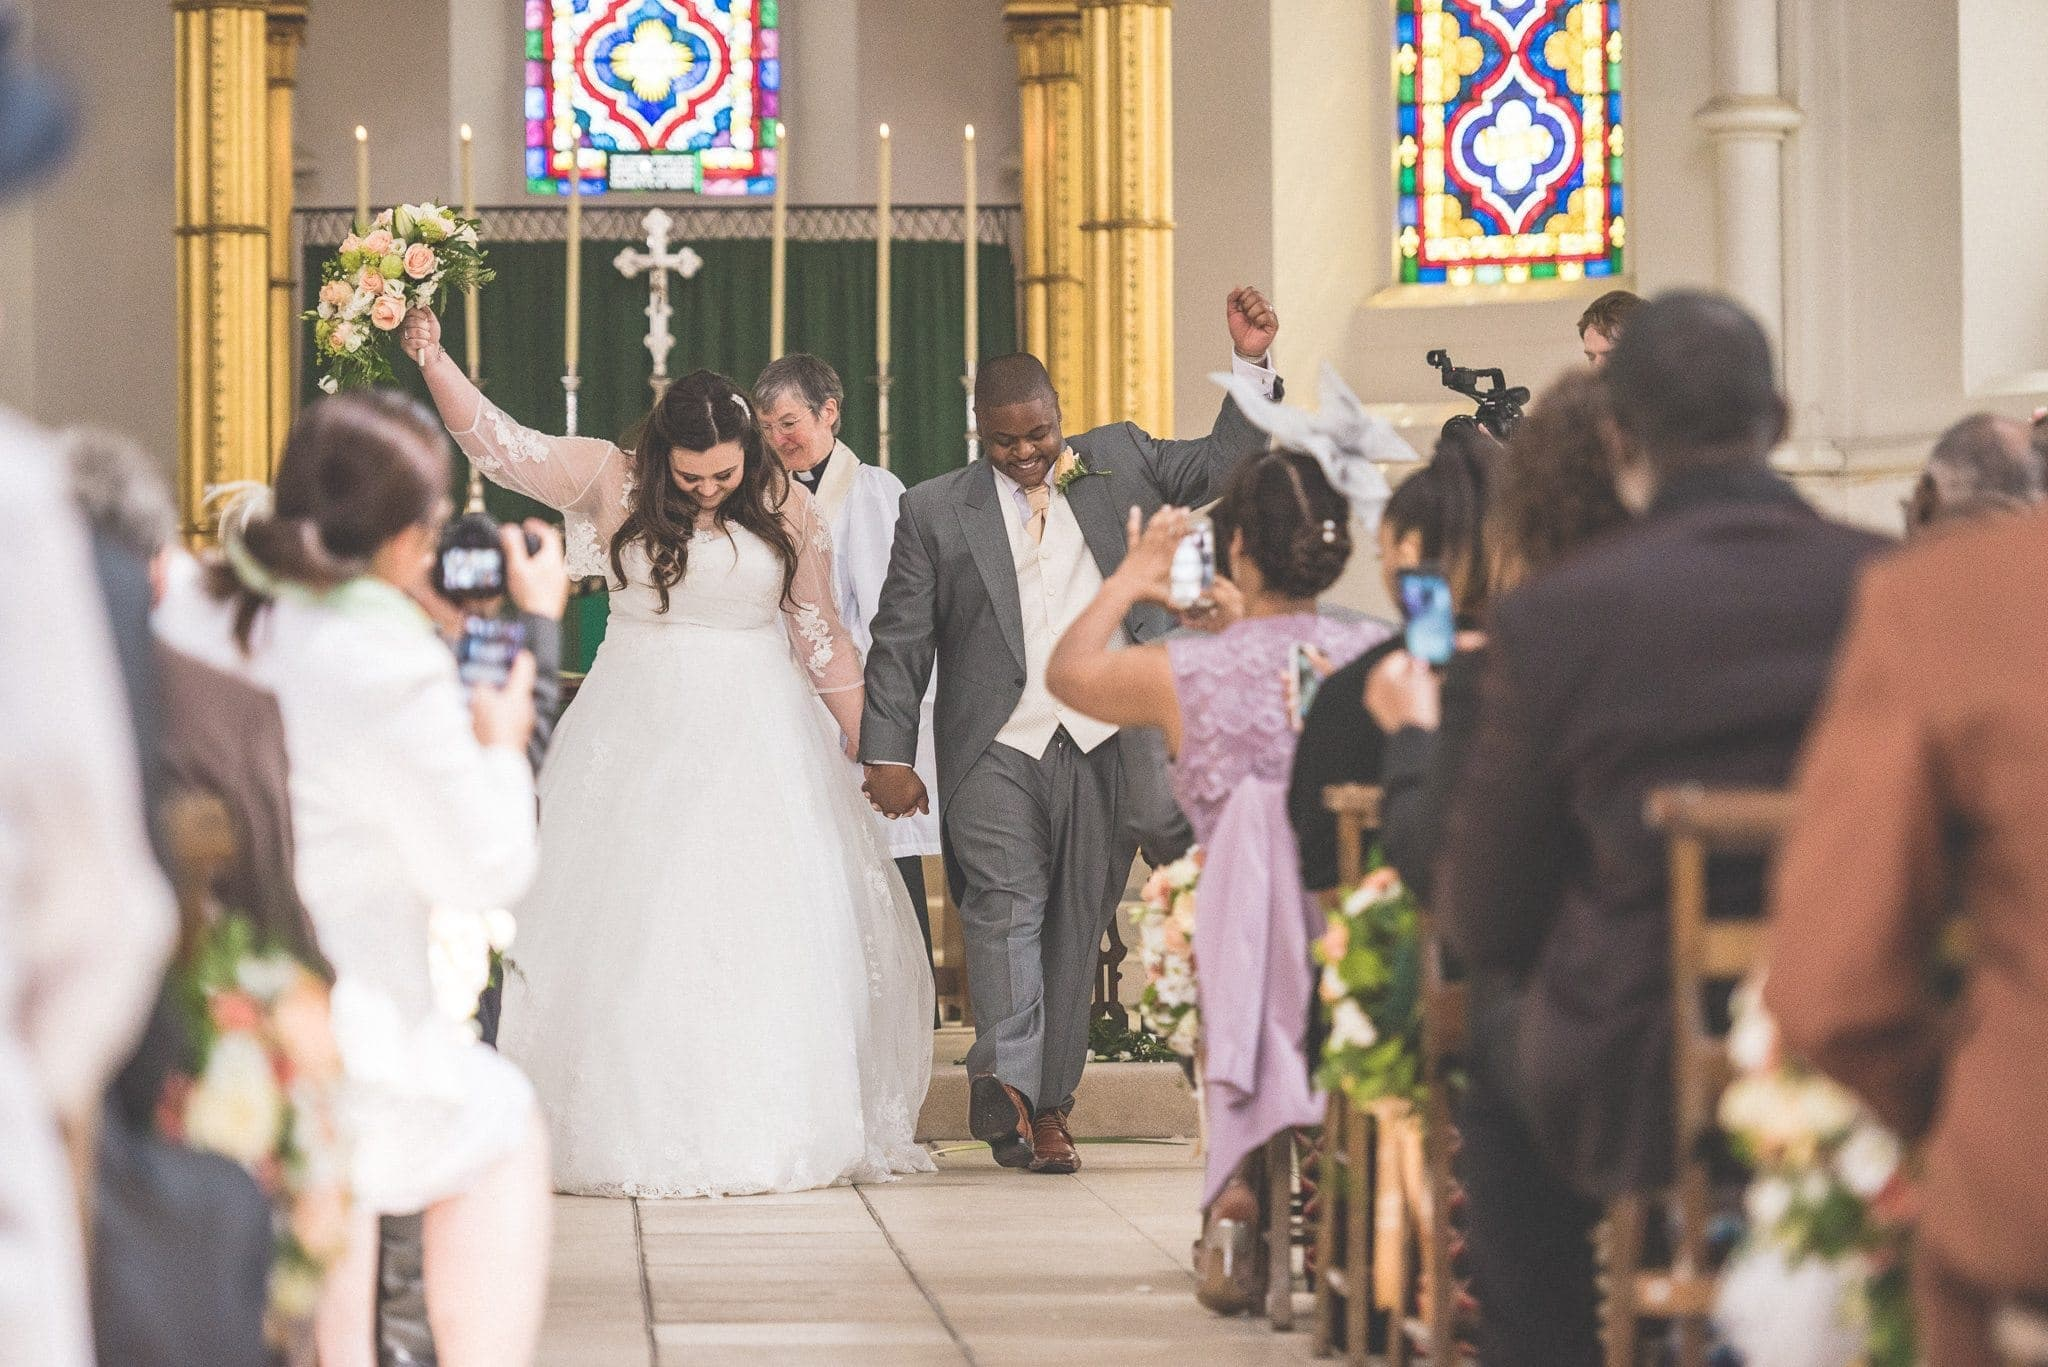 Bride and groom cheering as they walk down the aisle